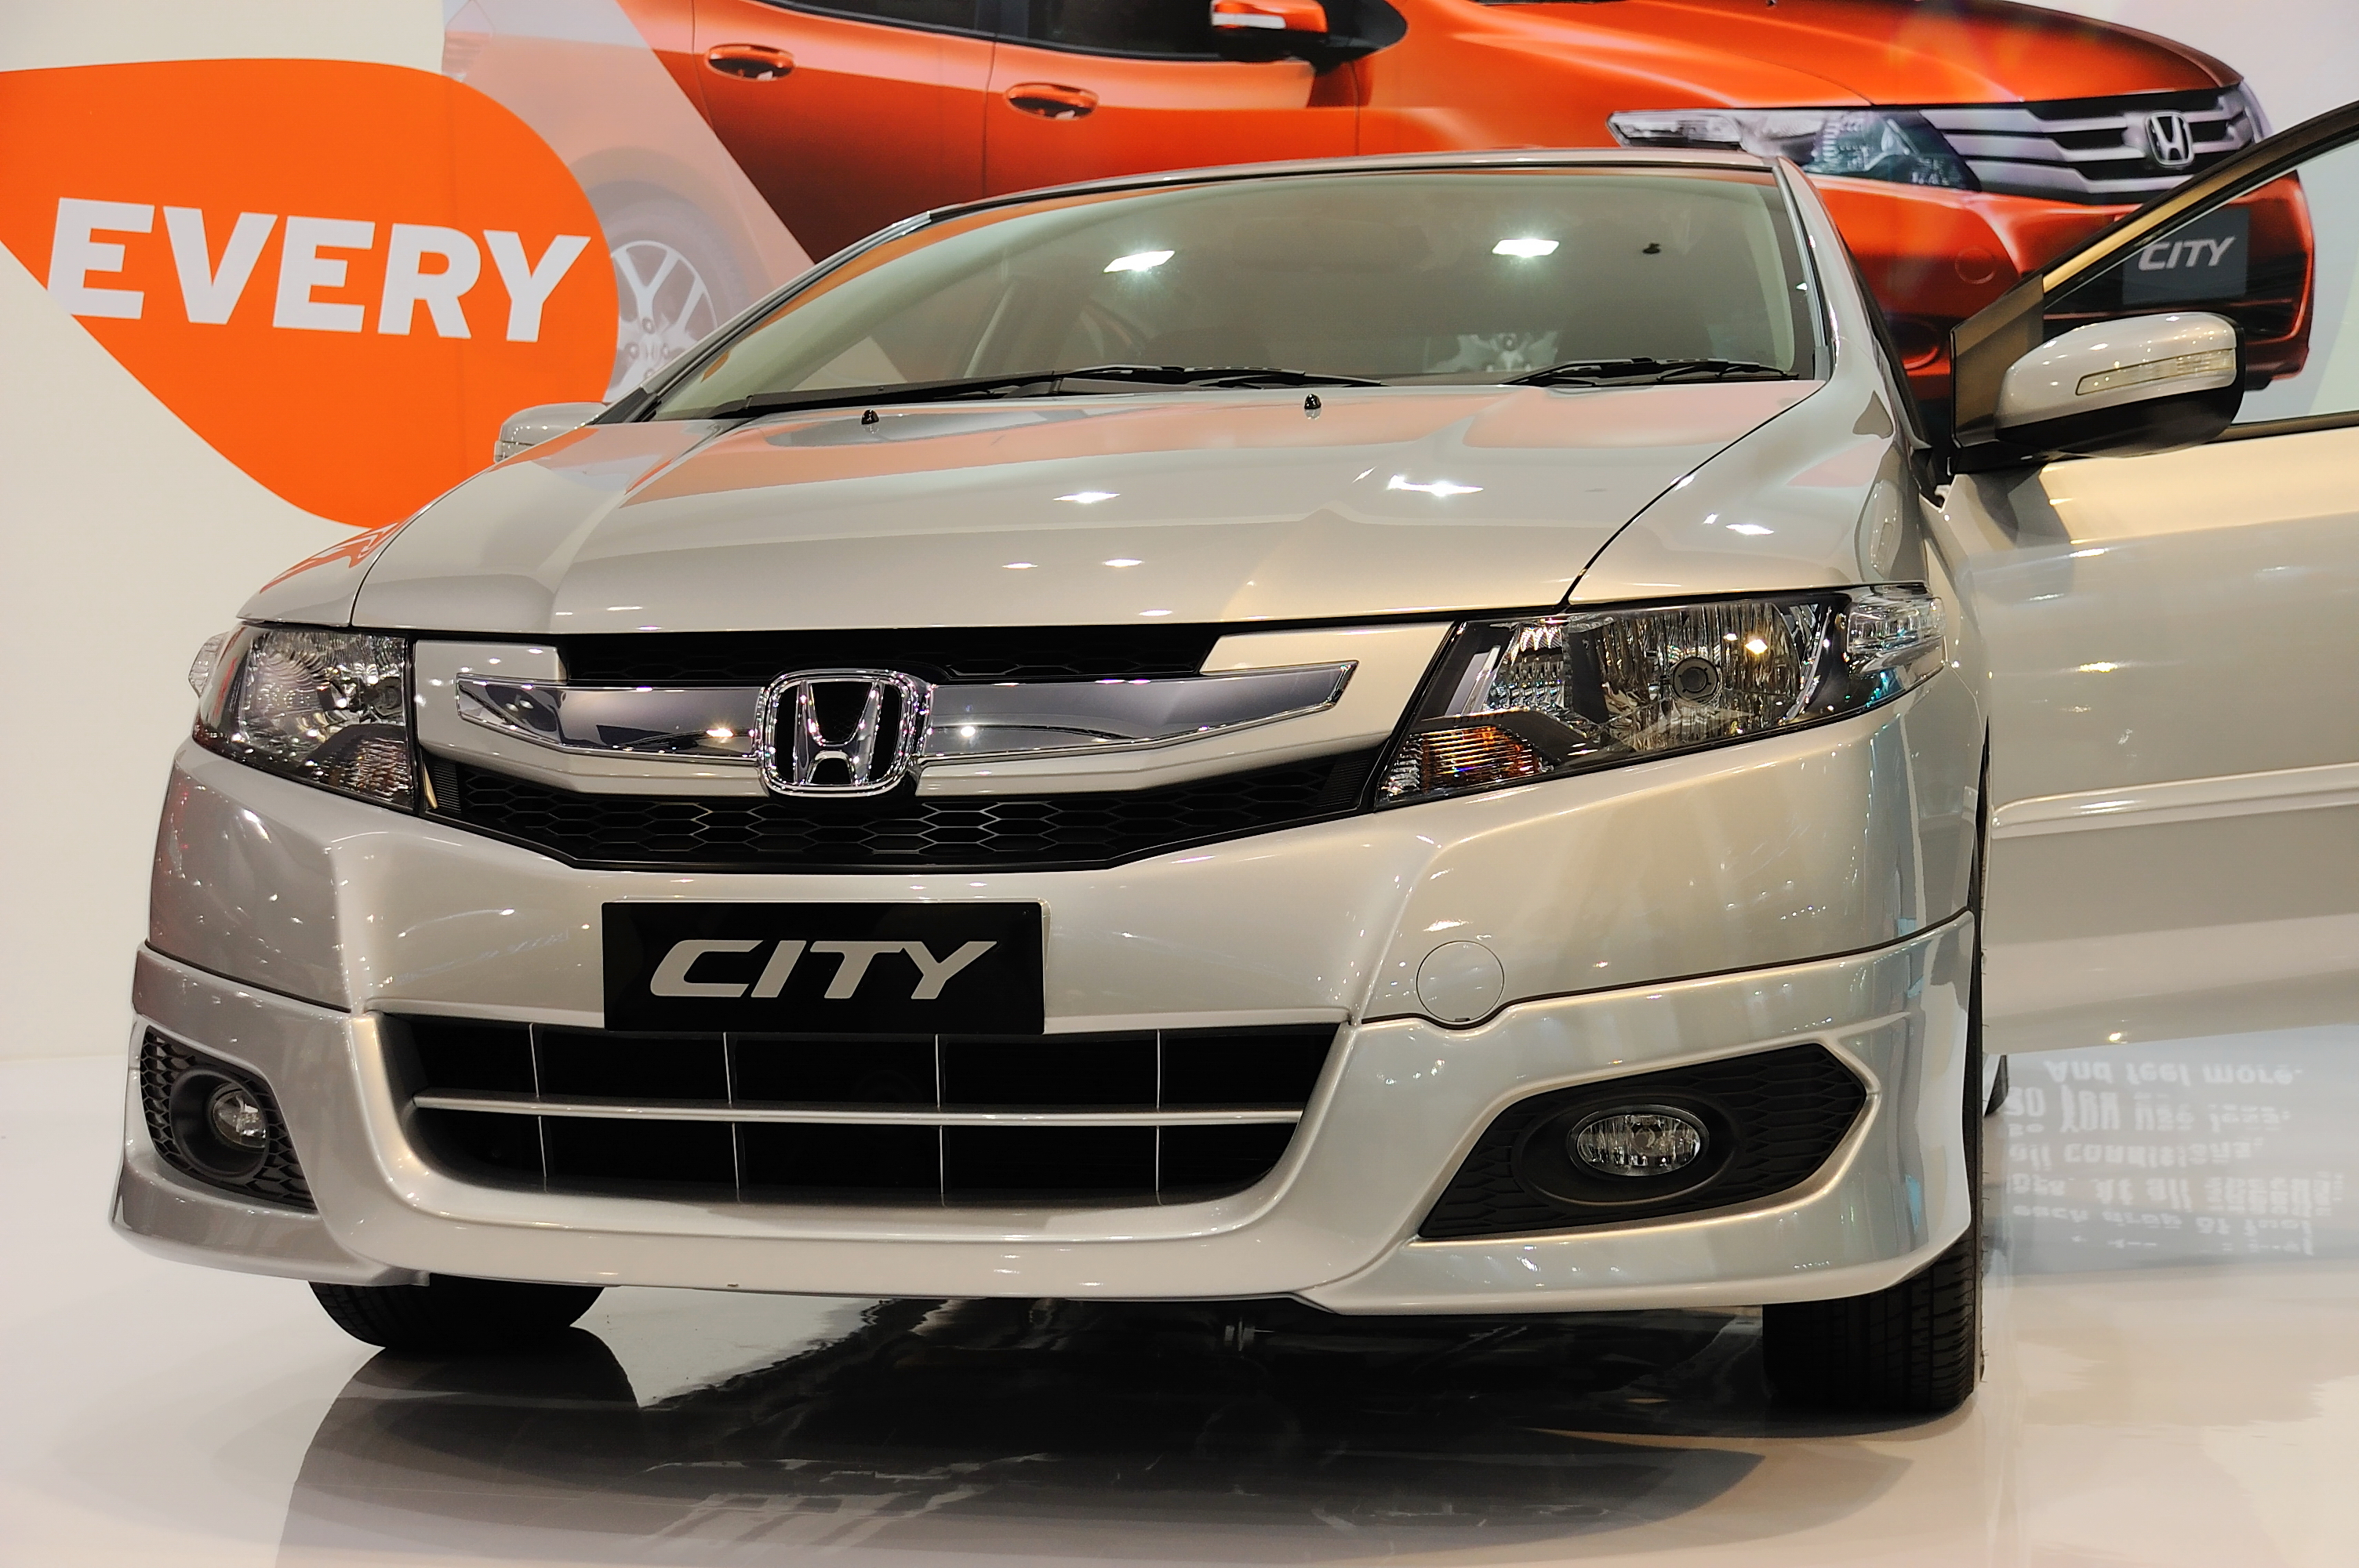 HONDA CITY ON DISPLAY BY ITANIUM